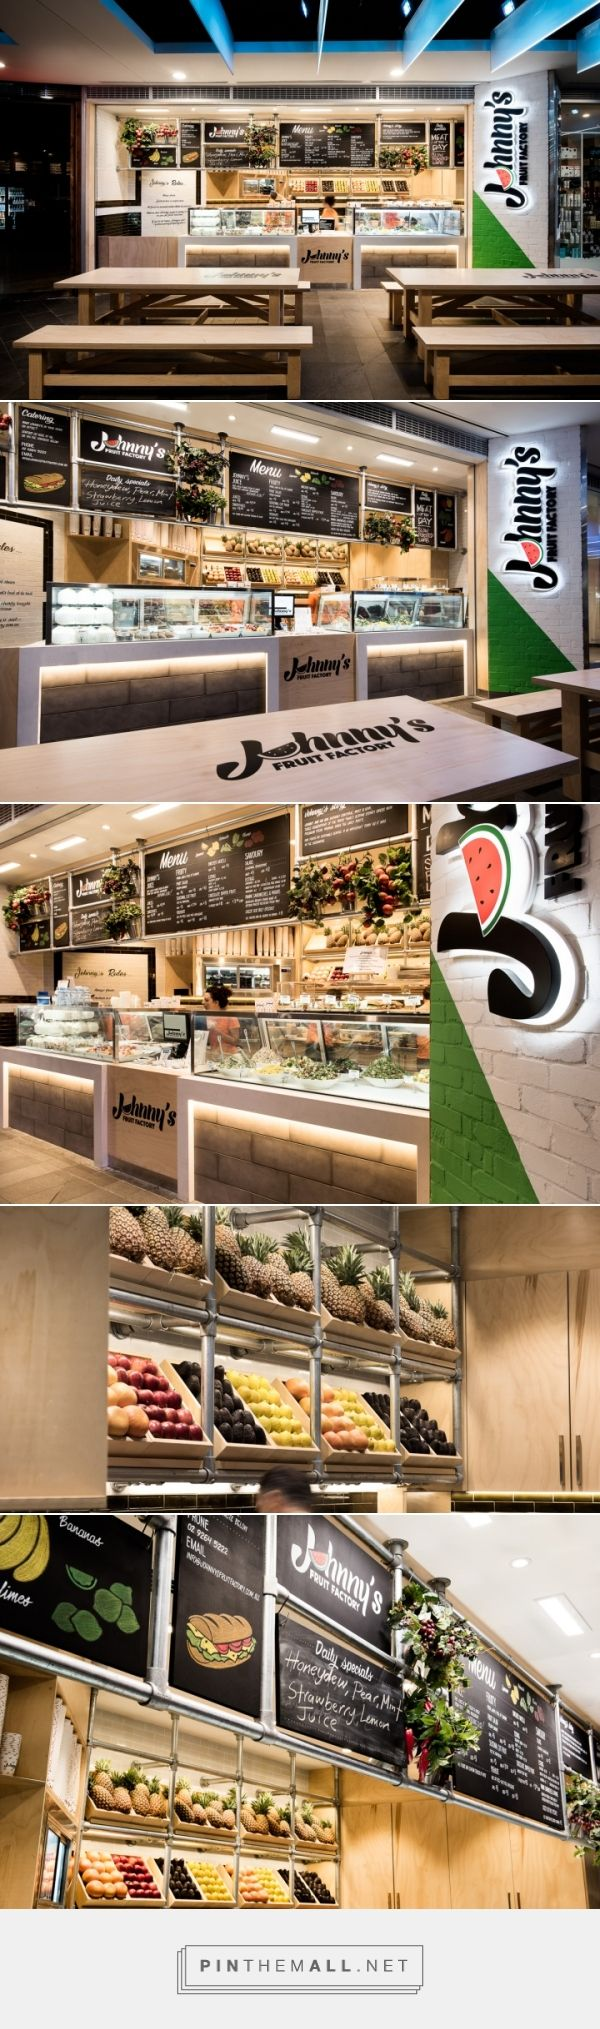 Johnny's Fruit Factory by Mima Design, Sydney – Australia »  Retail Design Blog - created via https://pinthemall.net